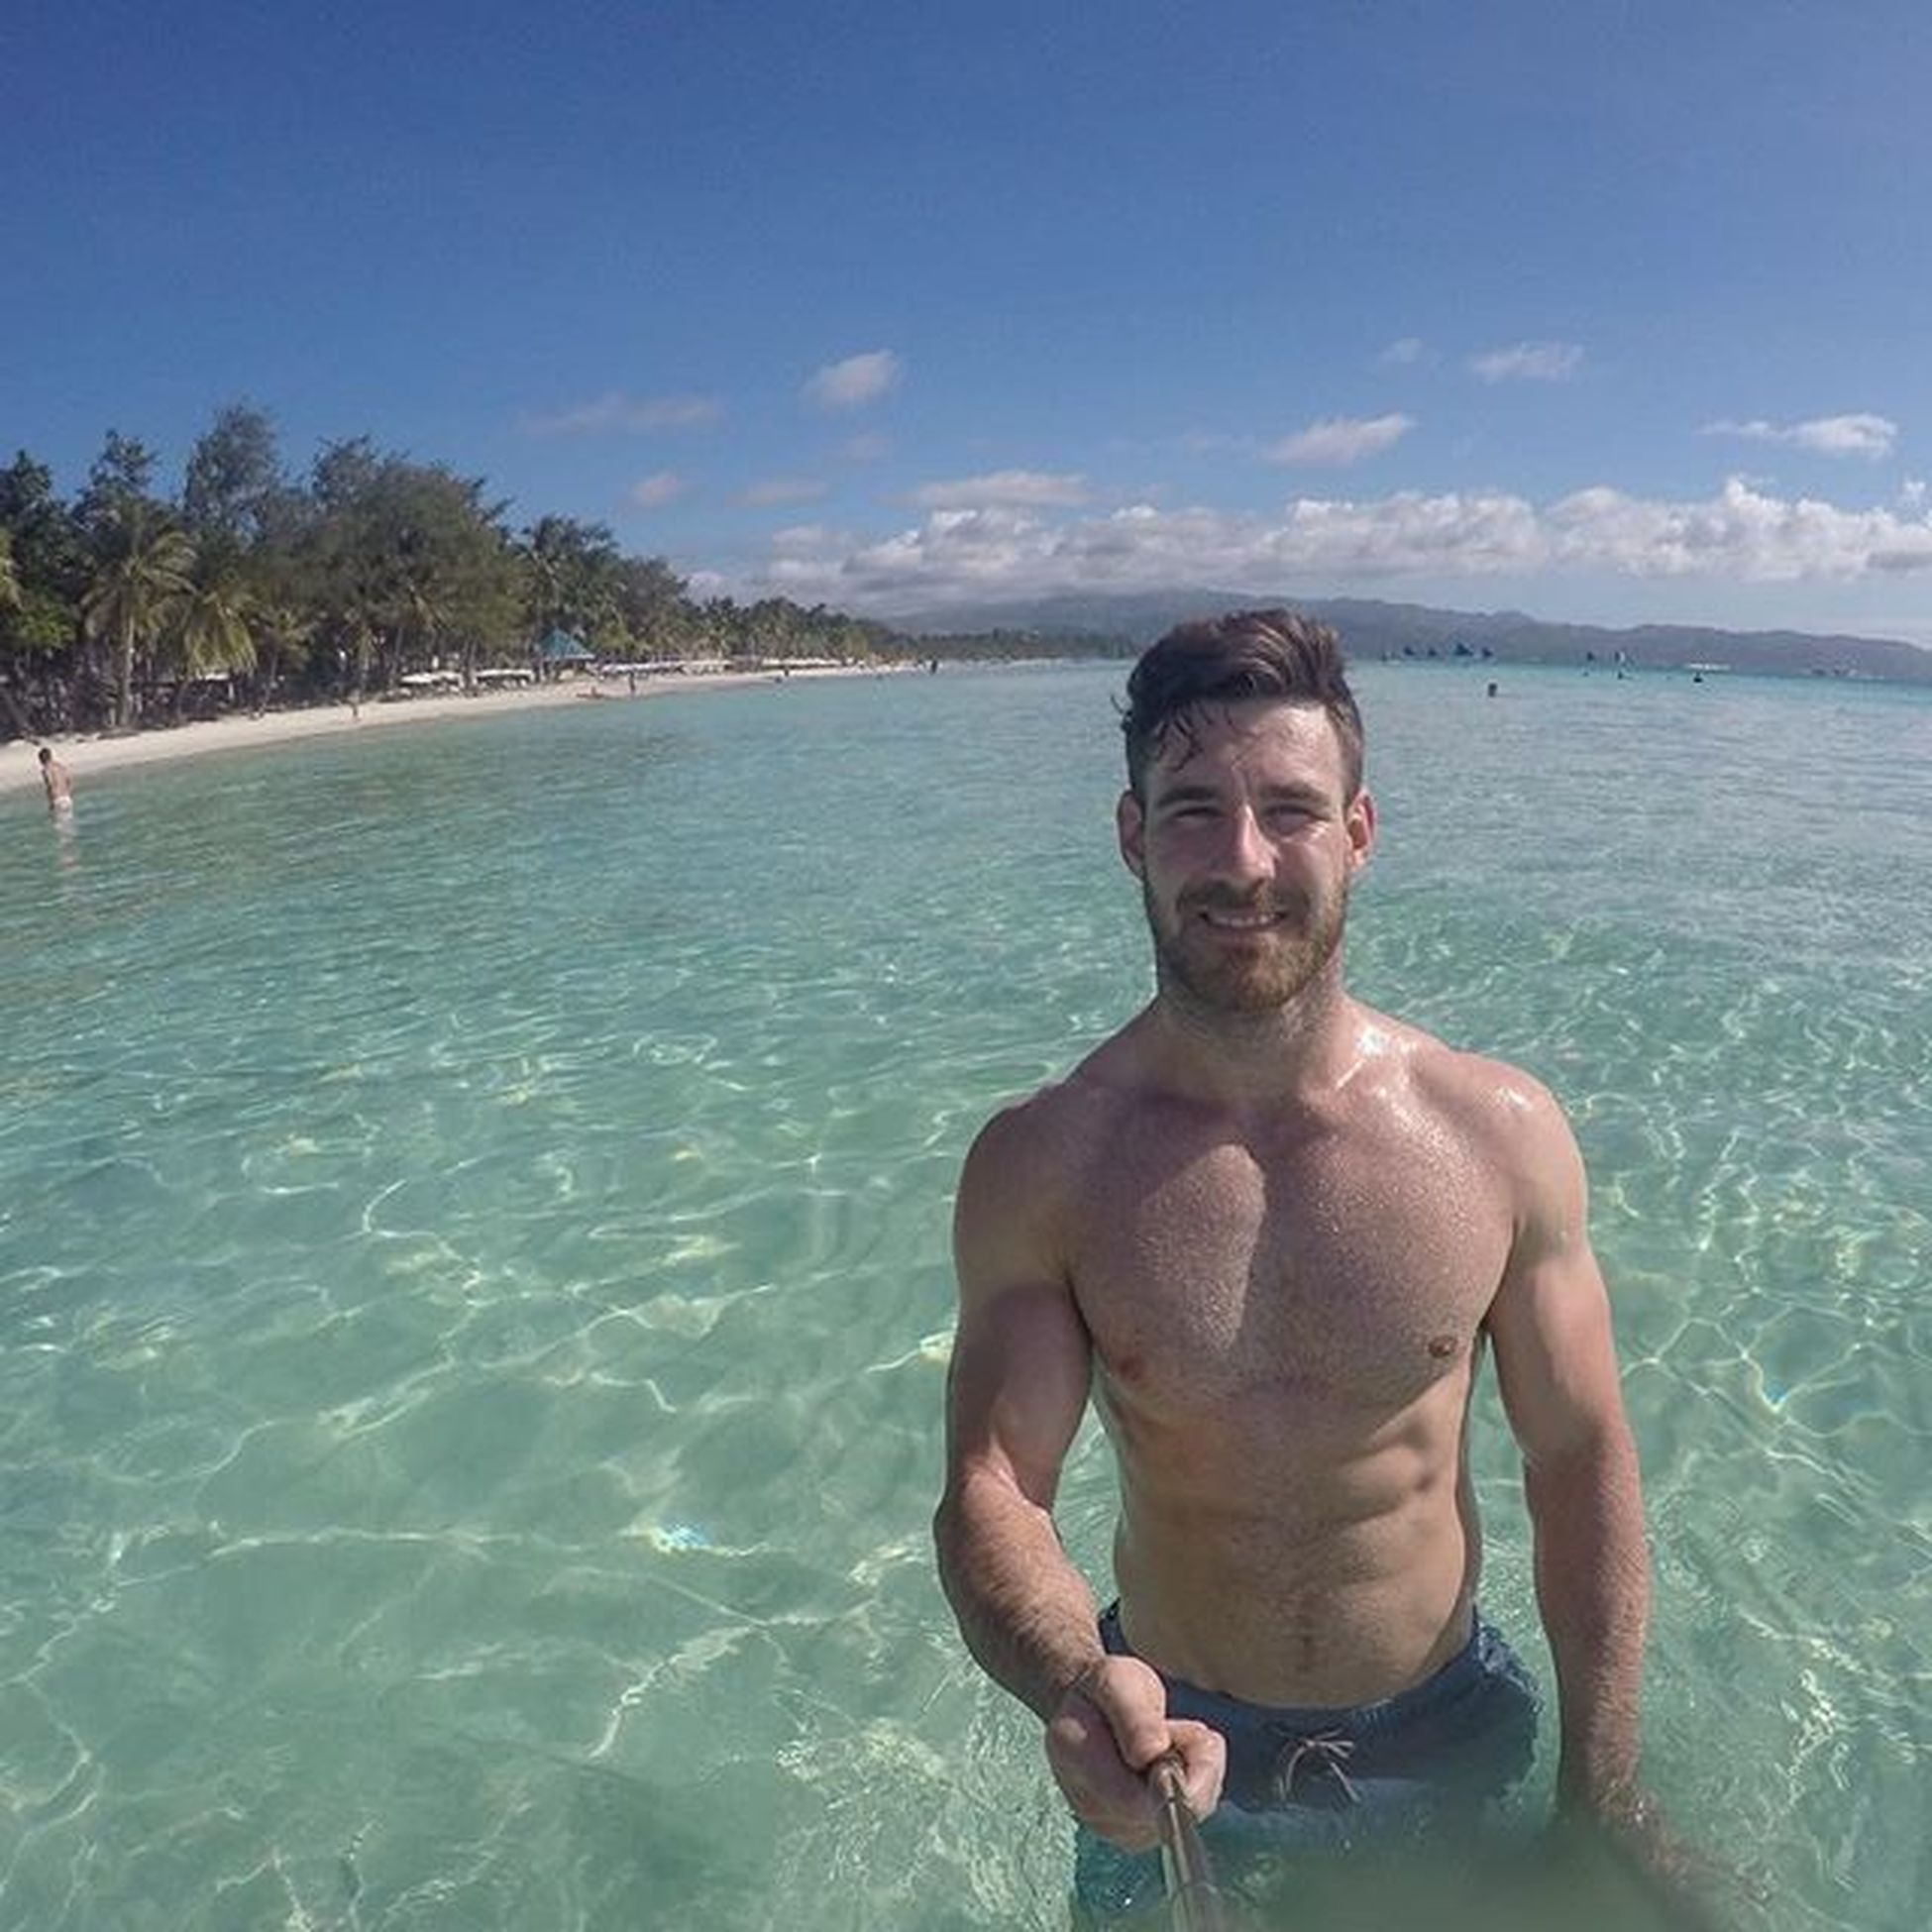 Boracay living the island life dream! Really need to hit a bit of exercise this evening so I'm going to get a bit of push in.... - close grip press ups 4 x 15 - lateral raises with resistance band 4 x 15 - wide grip press ups, feet on the bed 4 x 15 - front raises with band 4 x 15 (Everything very controlled) _ After being here 2 days Iv decided I probably won't worry about HIIT sessions too much as I won't be consuming enough calories to really put on fat! So I just want to give me muscles a decent workout, pumping some blood through them so that they know they're still needed! Philippines Islandlife Bodyweighttraining